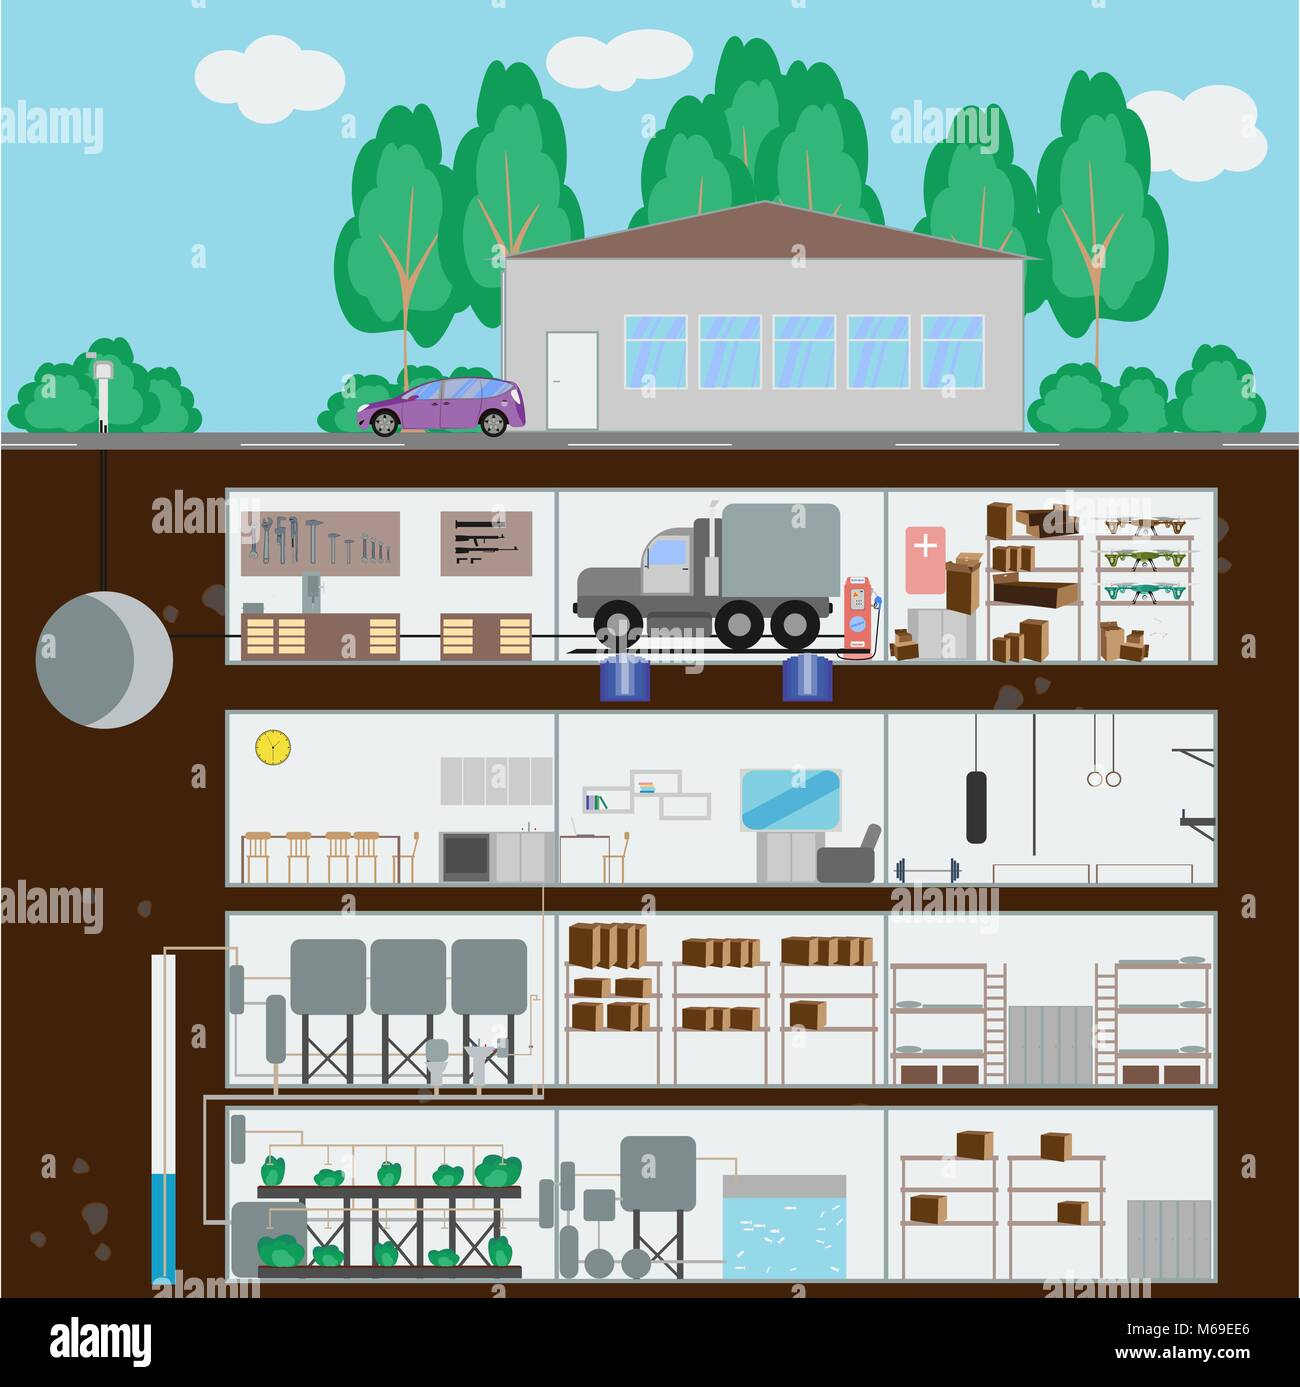 Underground bunker. Many parts of autonomous survival. Flat style. Vector illustration - Stock Image